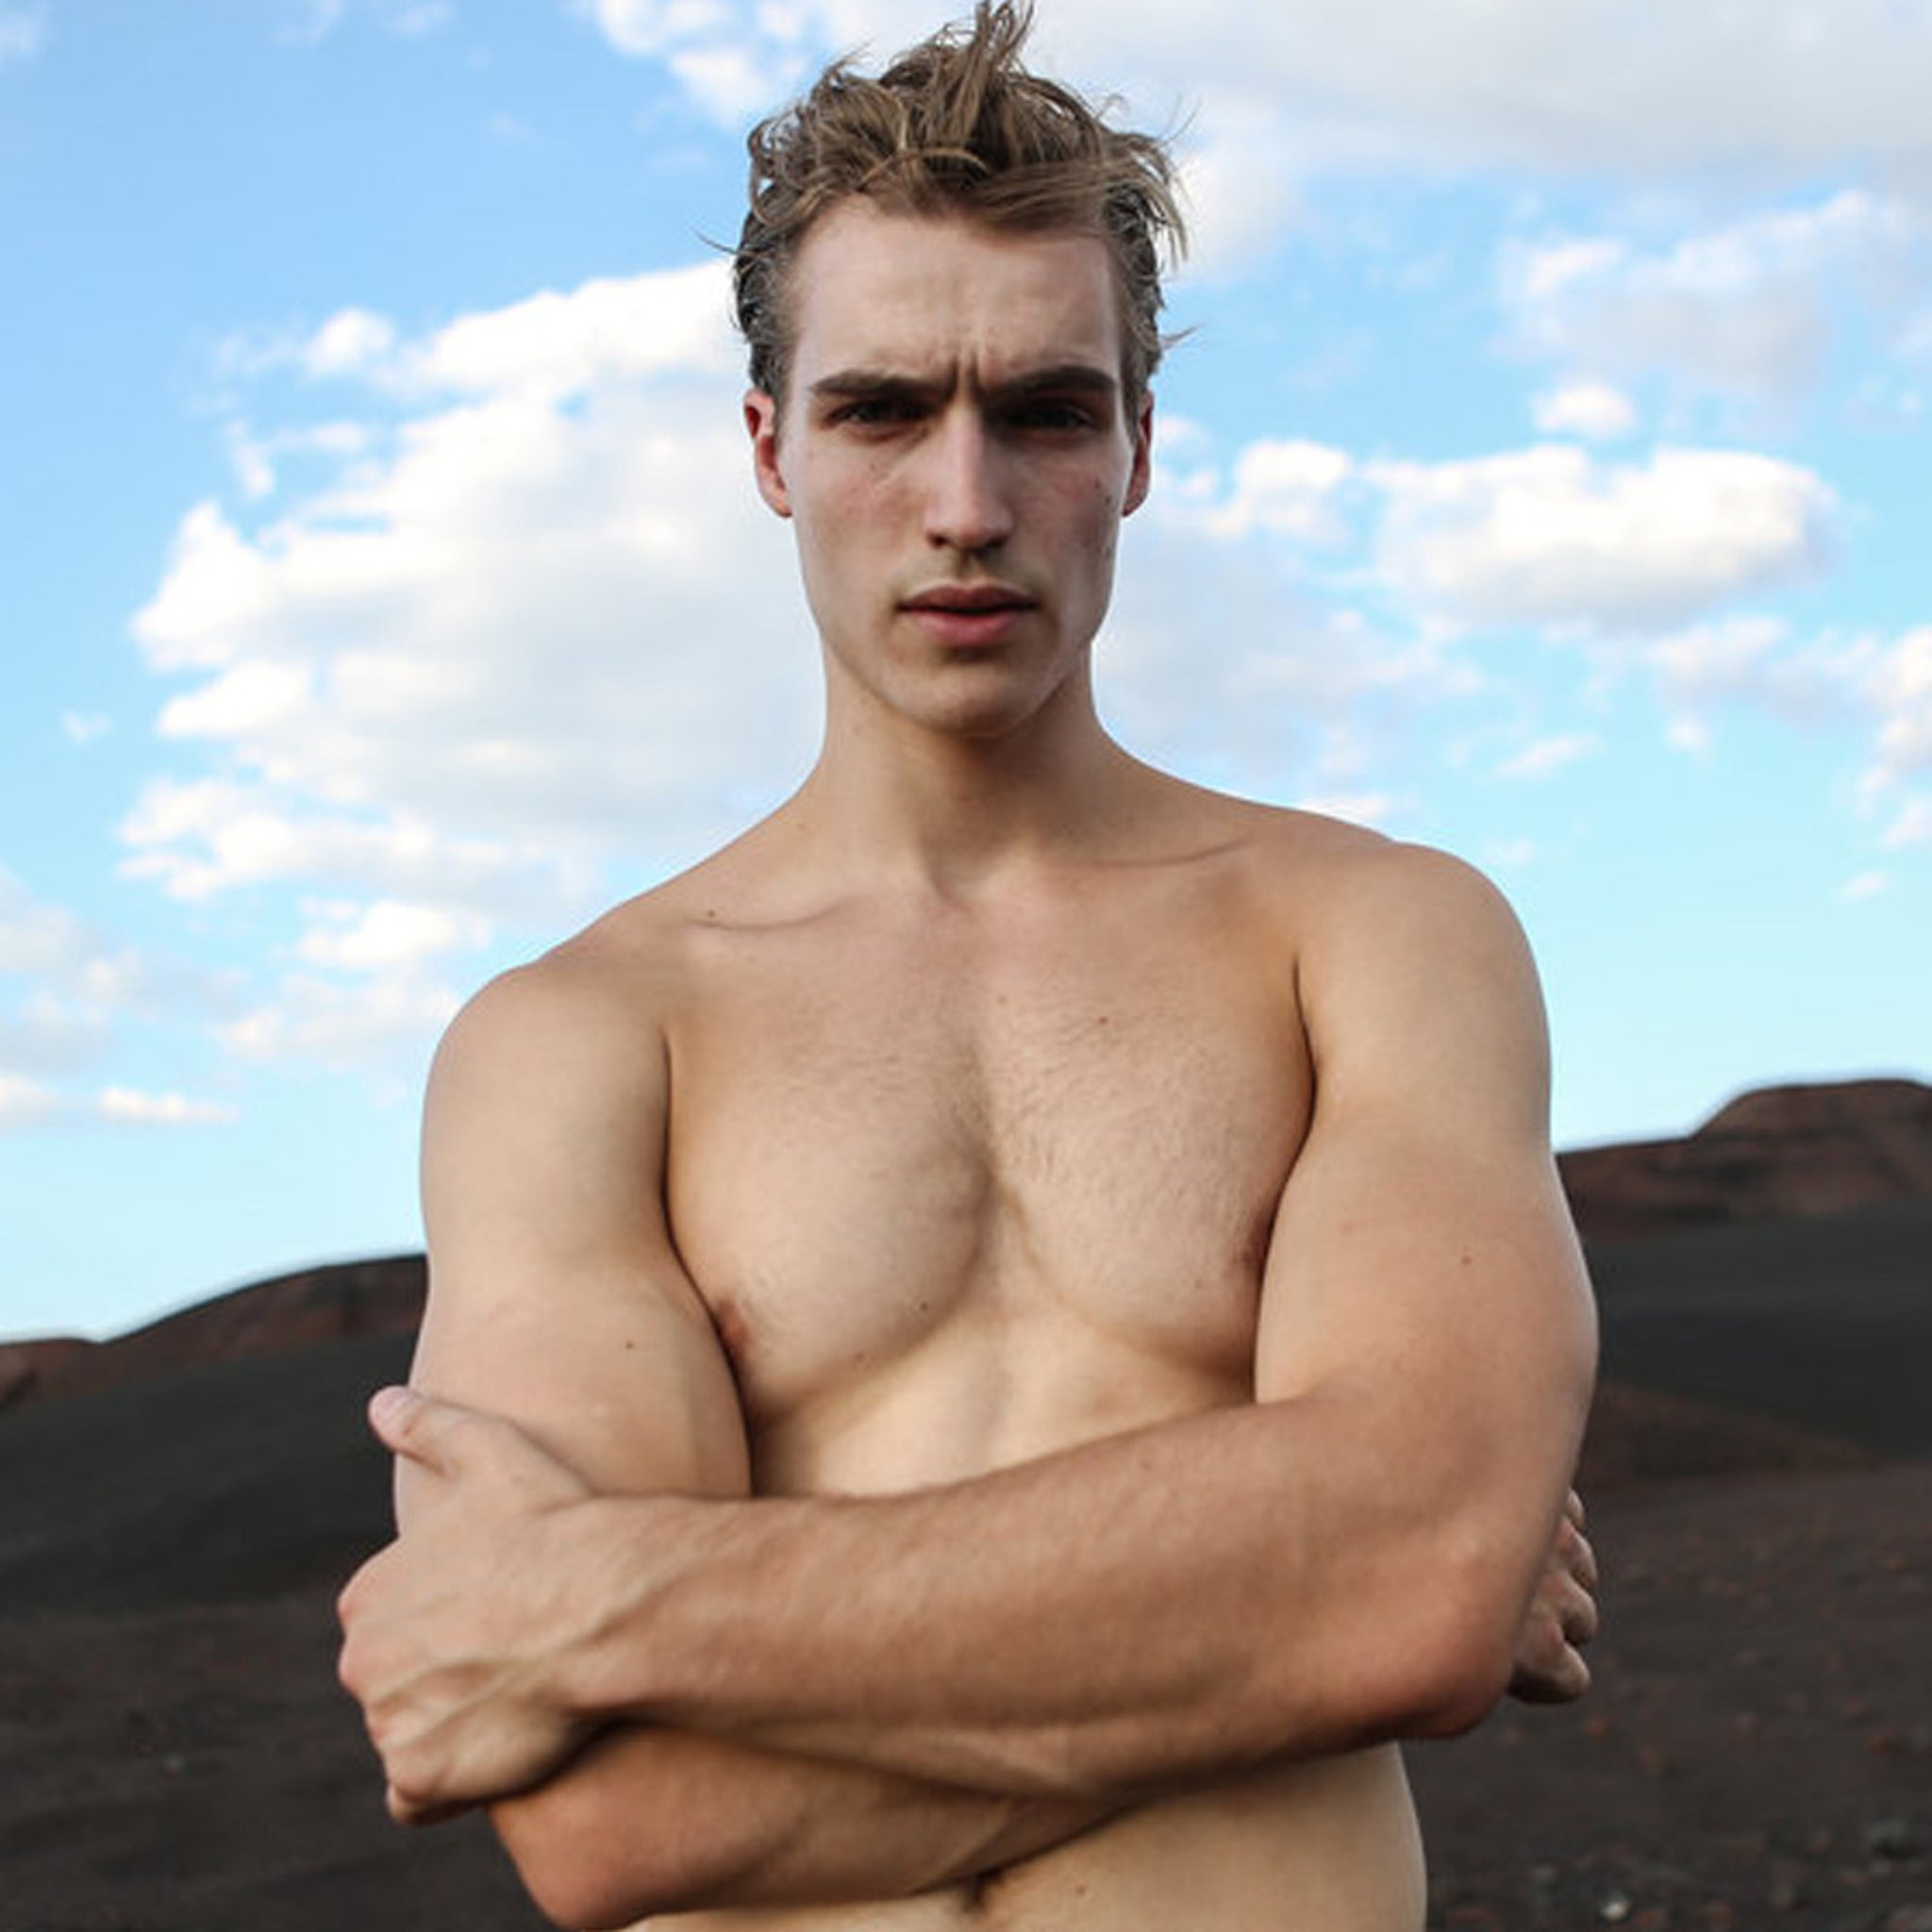 'Riverdale' Star Trevor Stines Signs Modeling Contract